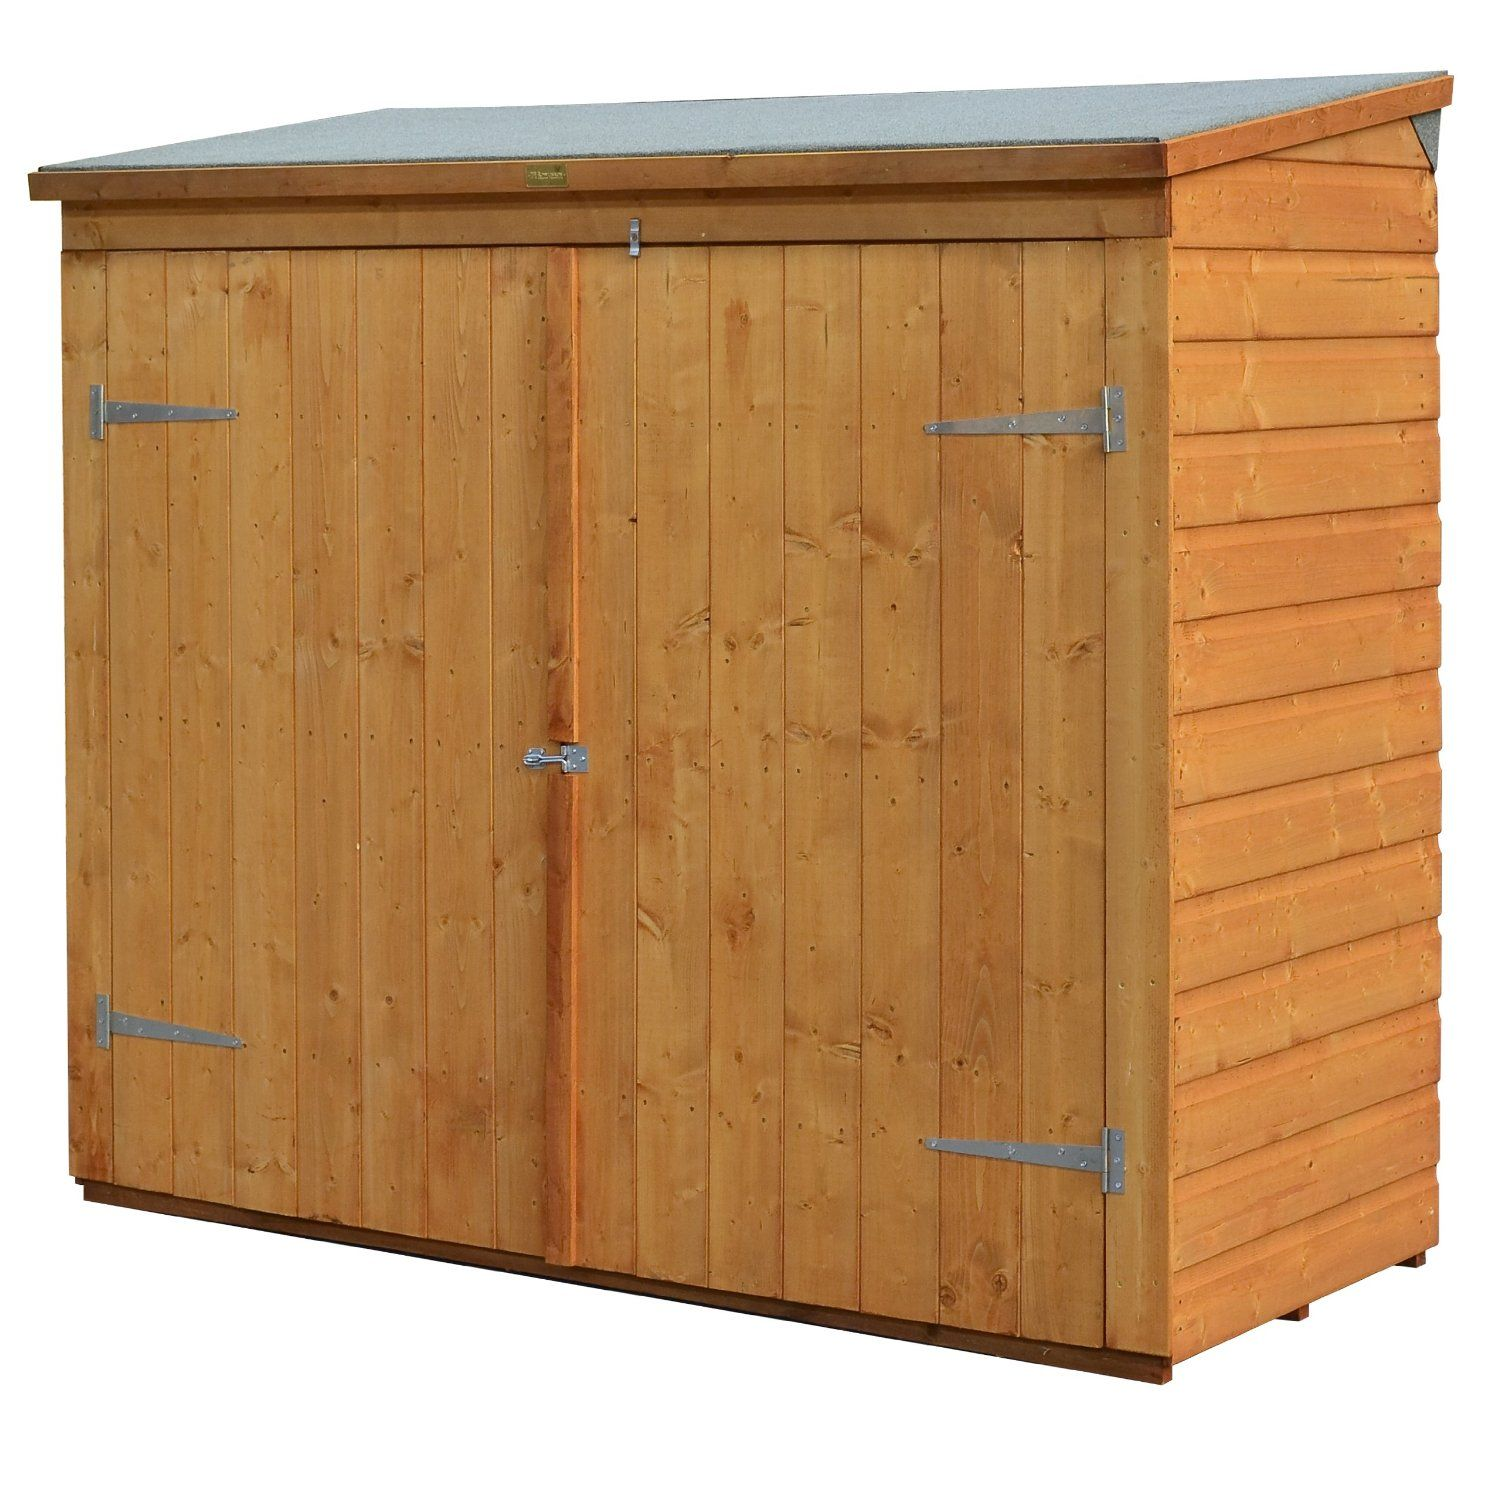 Amazon.com : Bosmere WS1881H Rowlinson Wallstore Wooden Outdoor ...